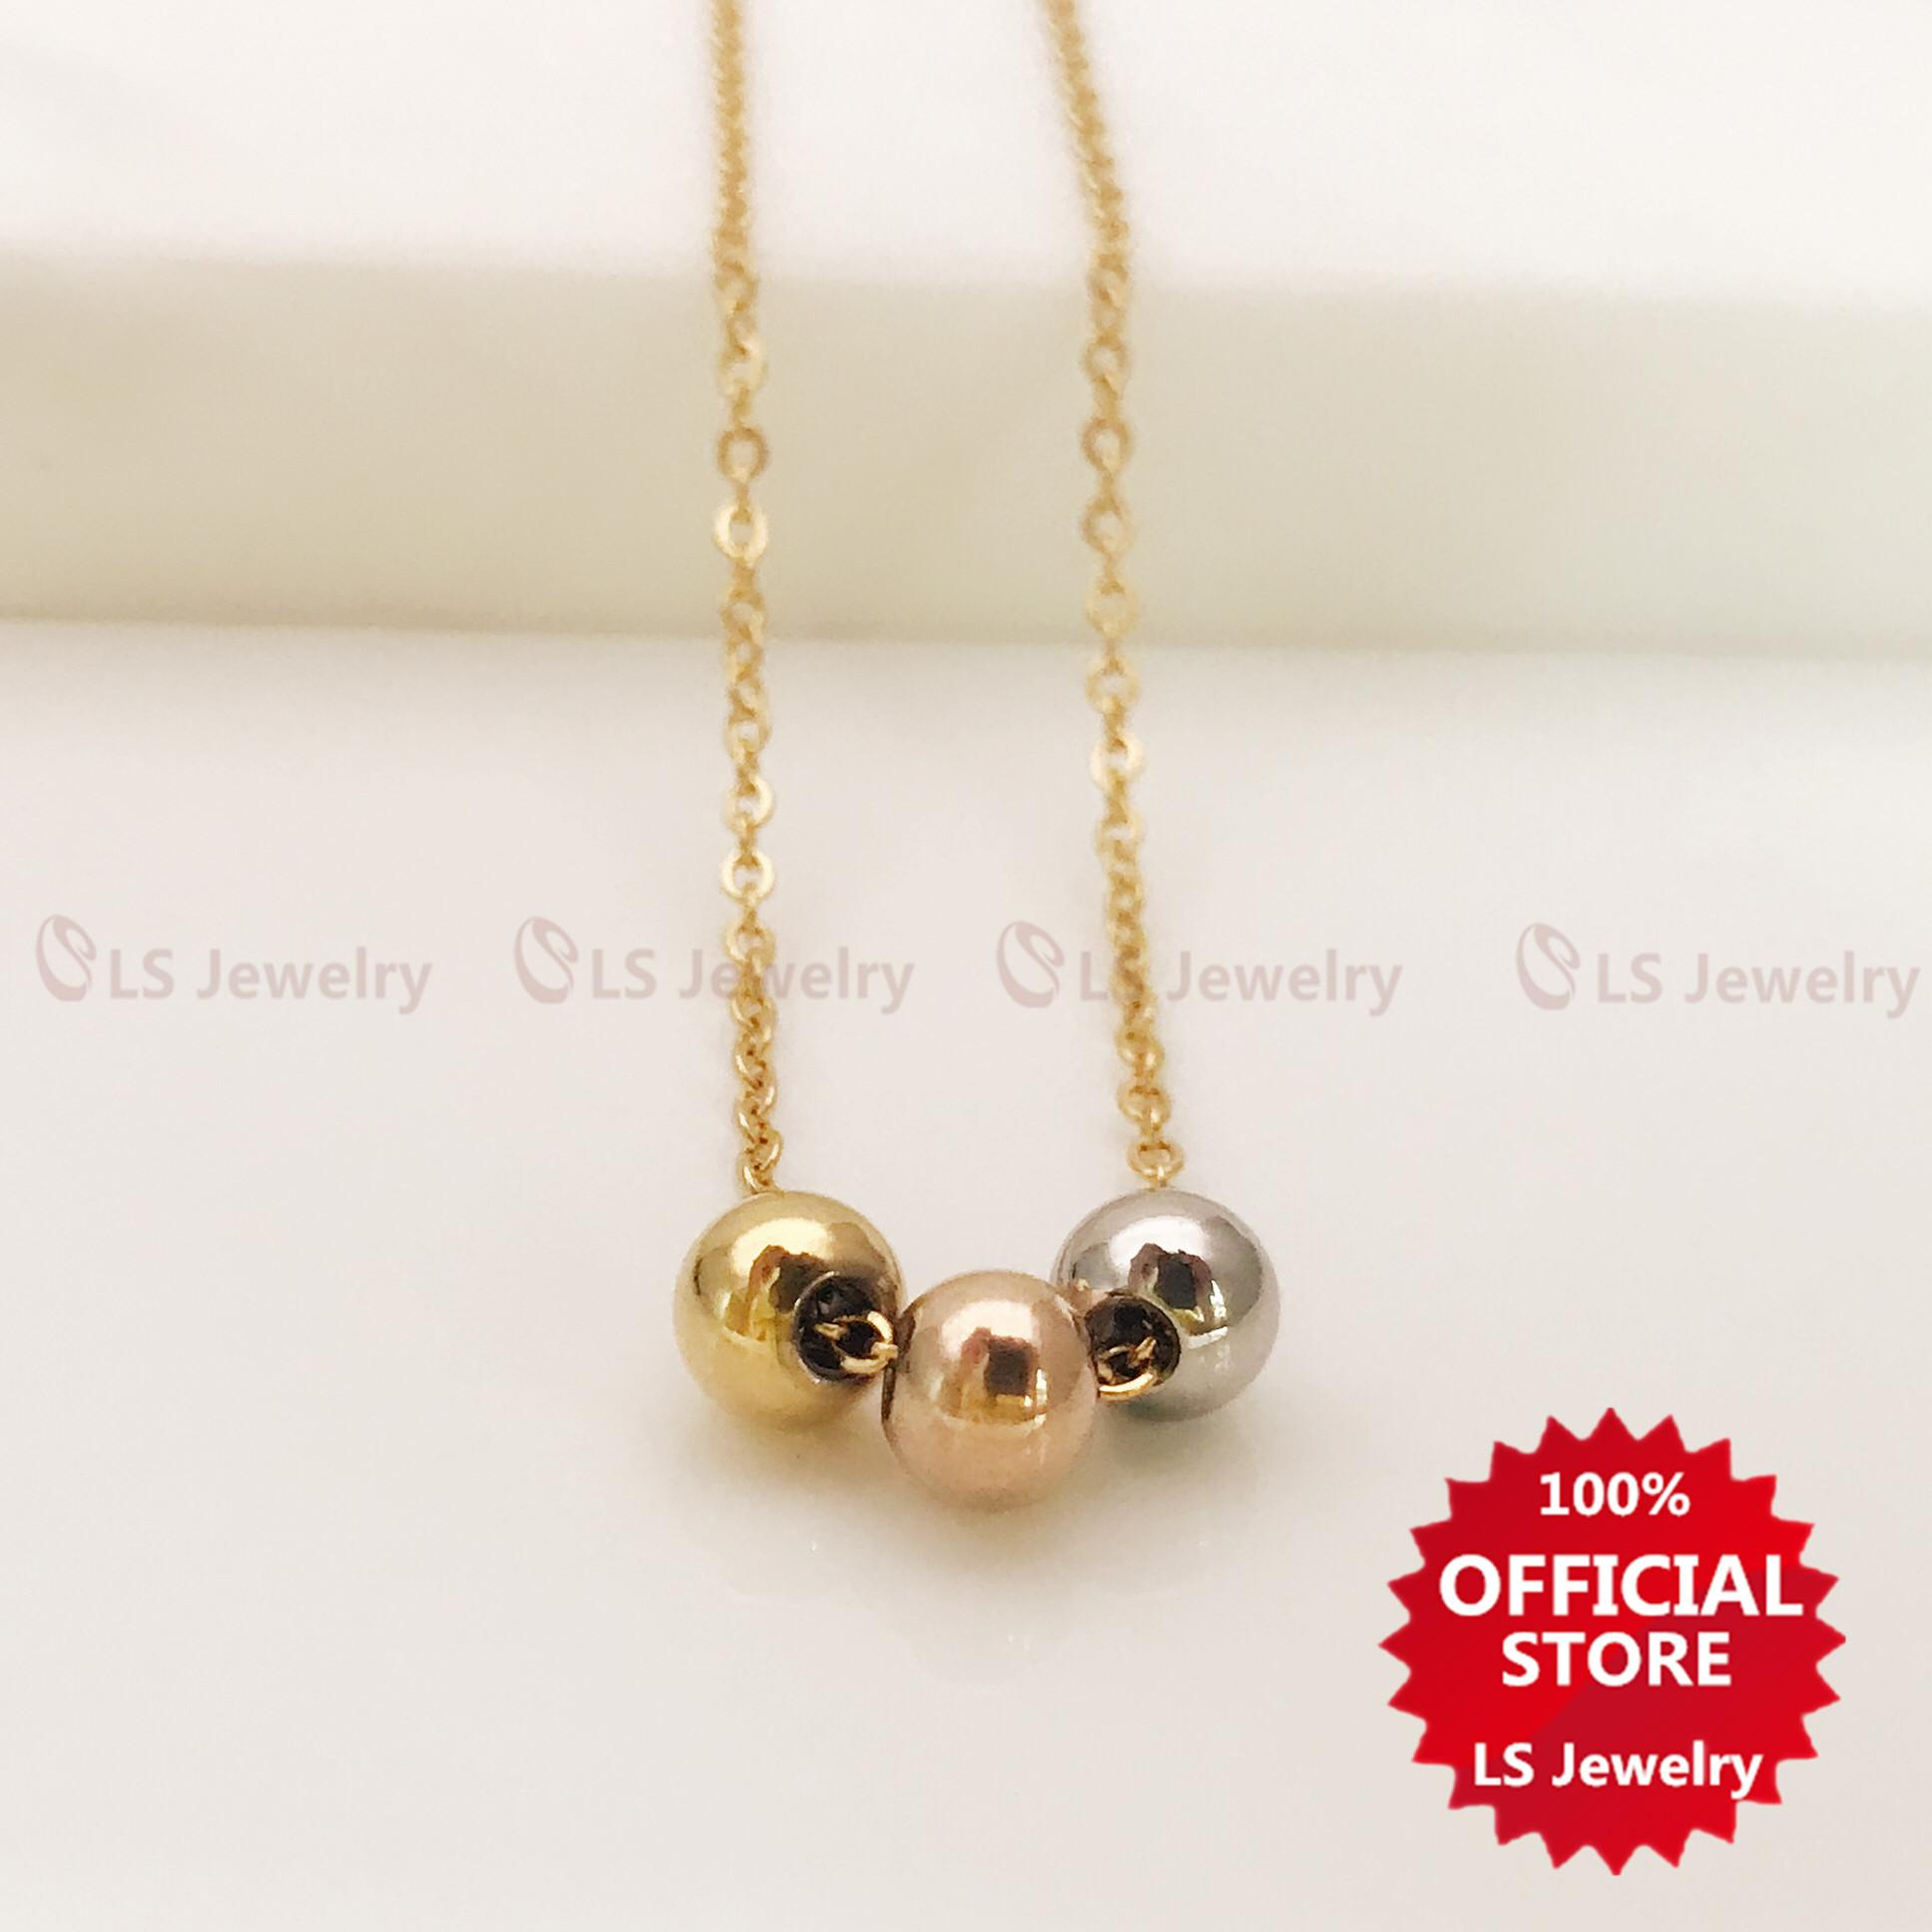 be32cd4e3ed07b LS jewelry Fashionable 14K Stainless gold plated Necklace for women N0040